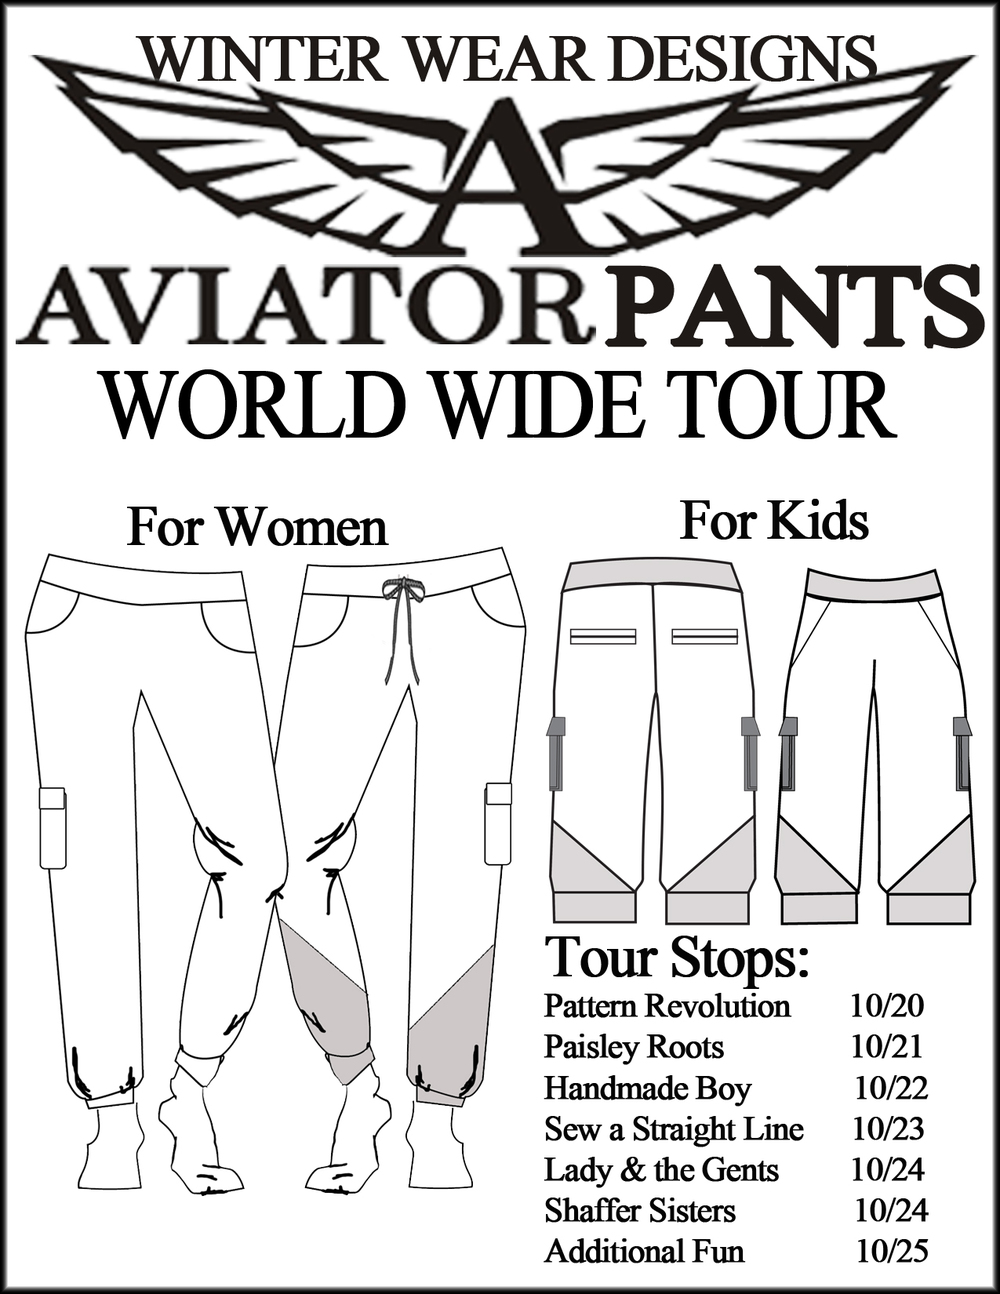 World Wide Tour- Aviator Pants- Winter Wear Designs- Pattern Revolution